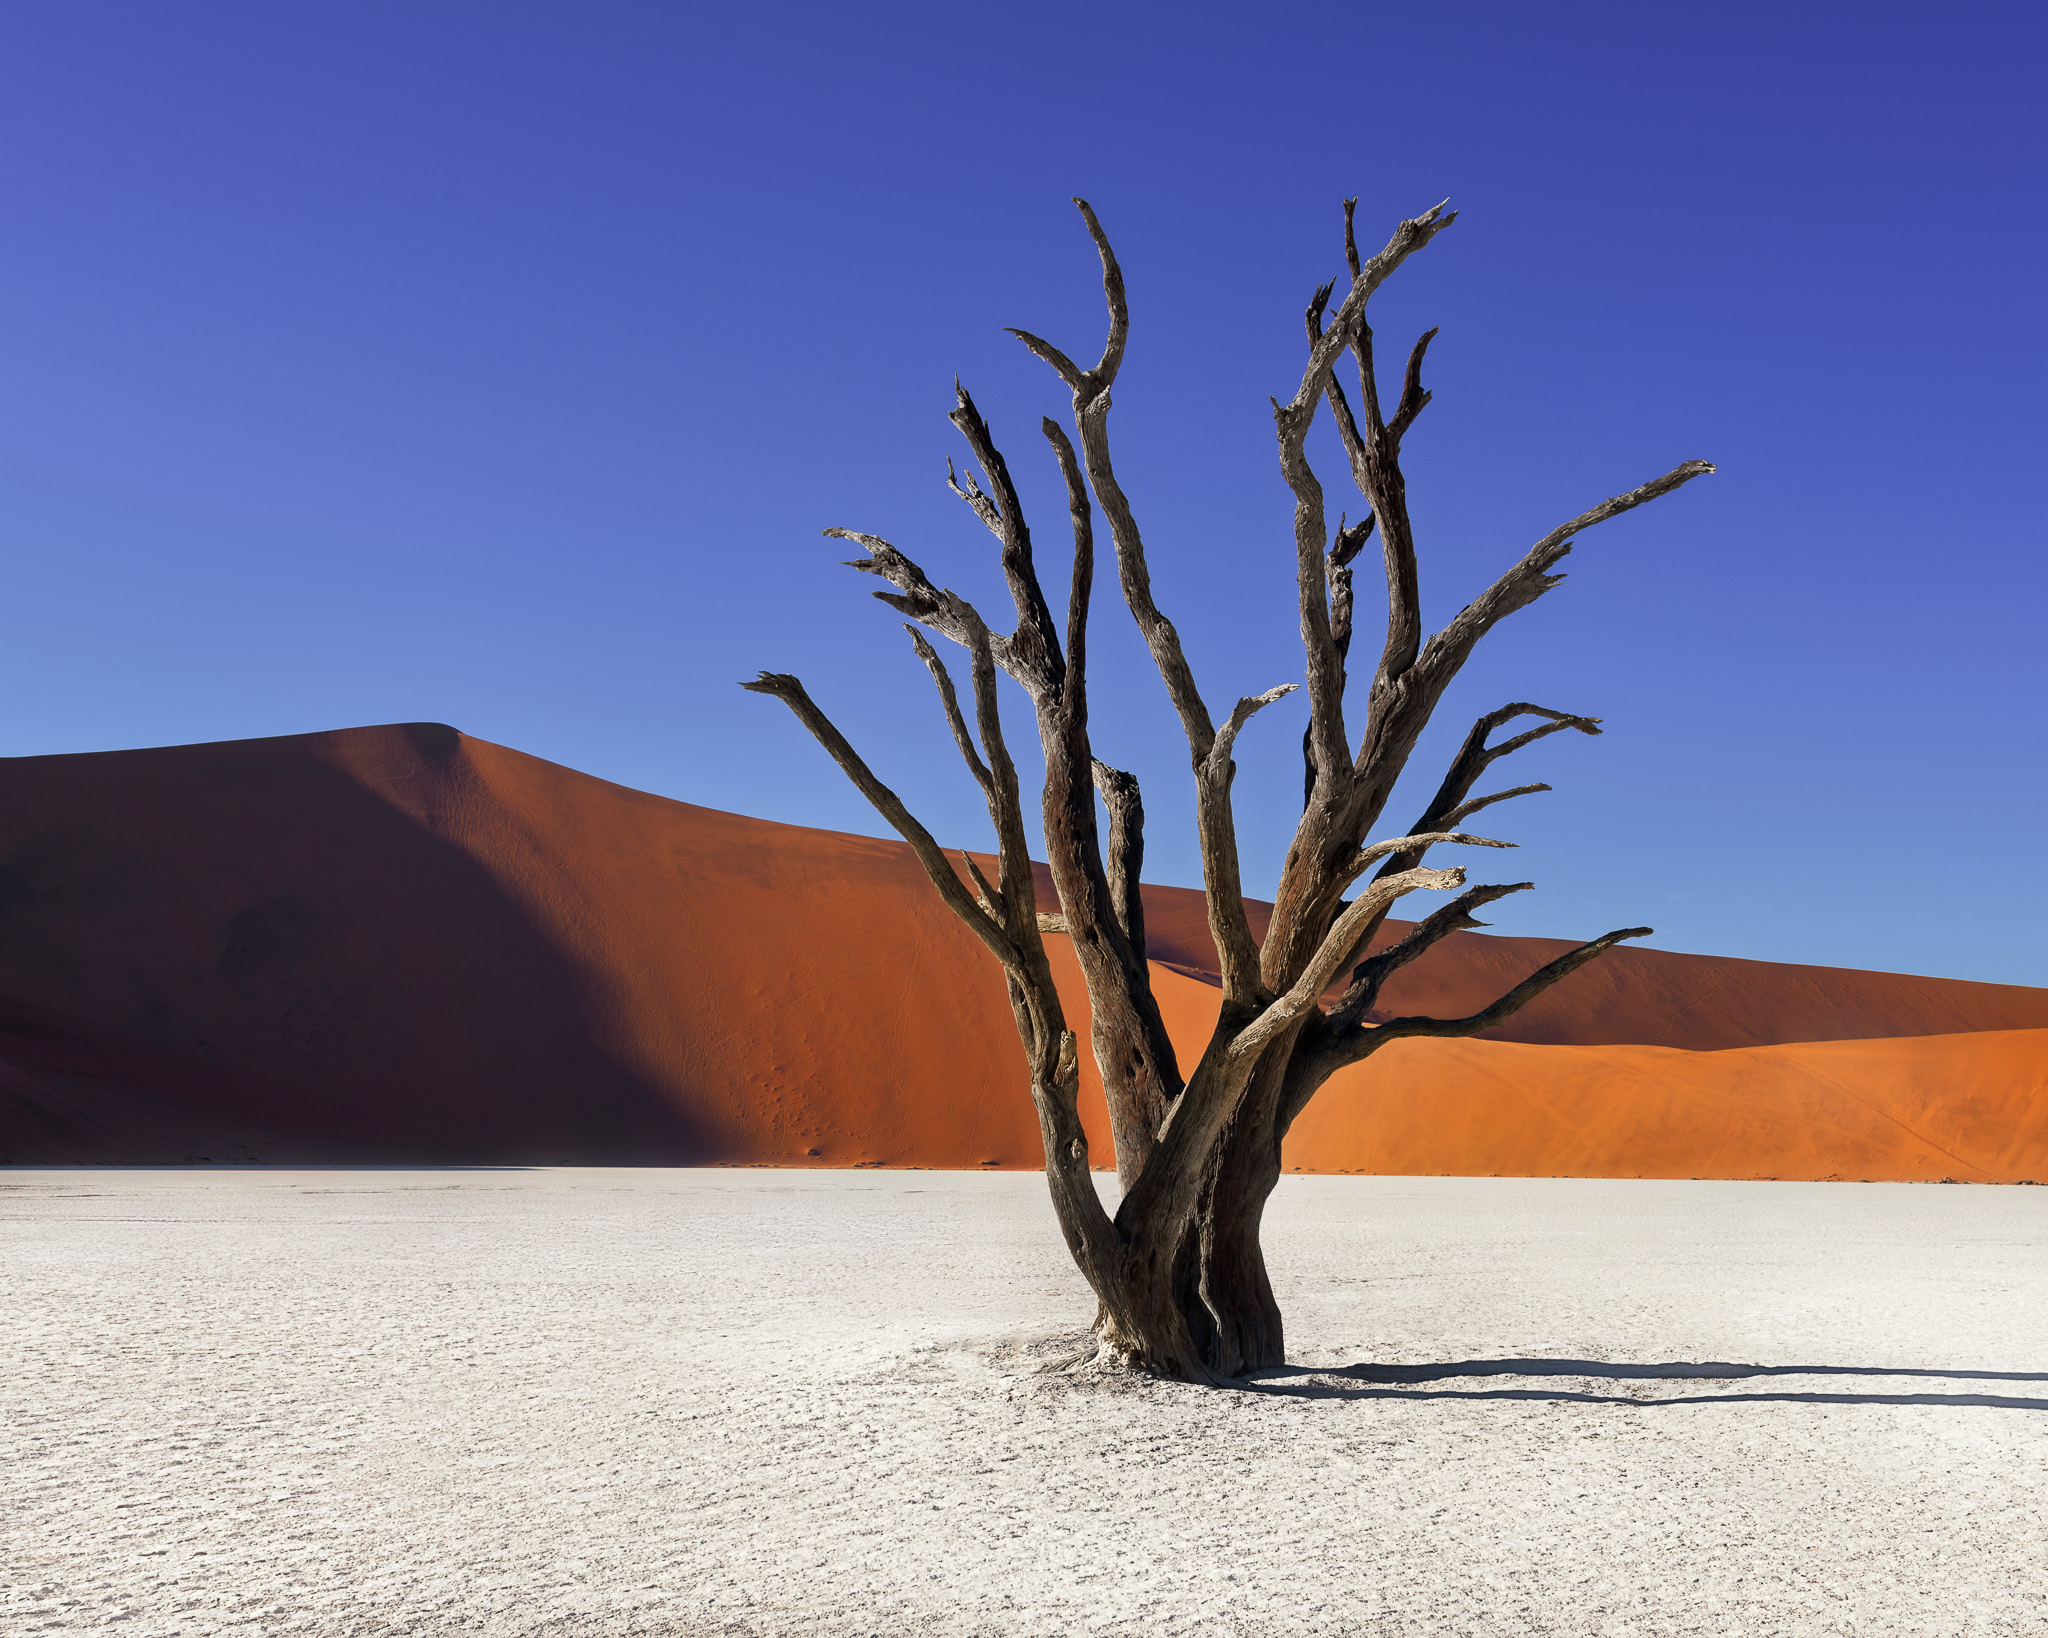 Dead-Acacia-Trees-and-Red-Dunes-of-Deadvlei-in-Namib-Naukluft-Park-Namibia.jpg